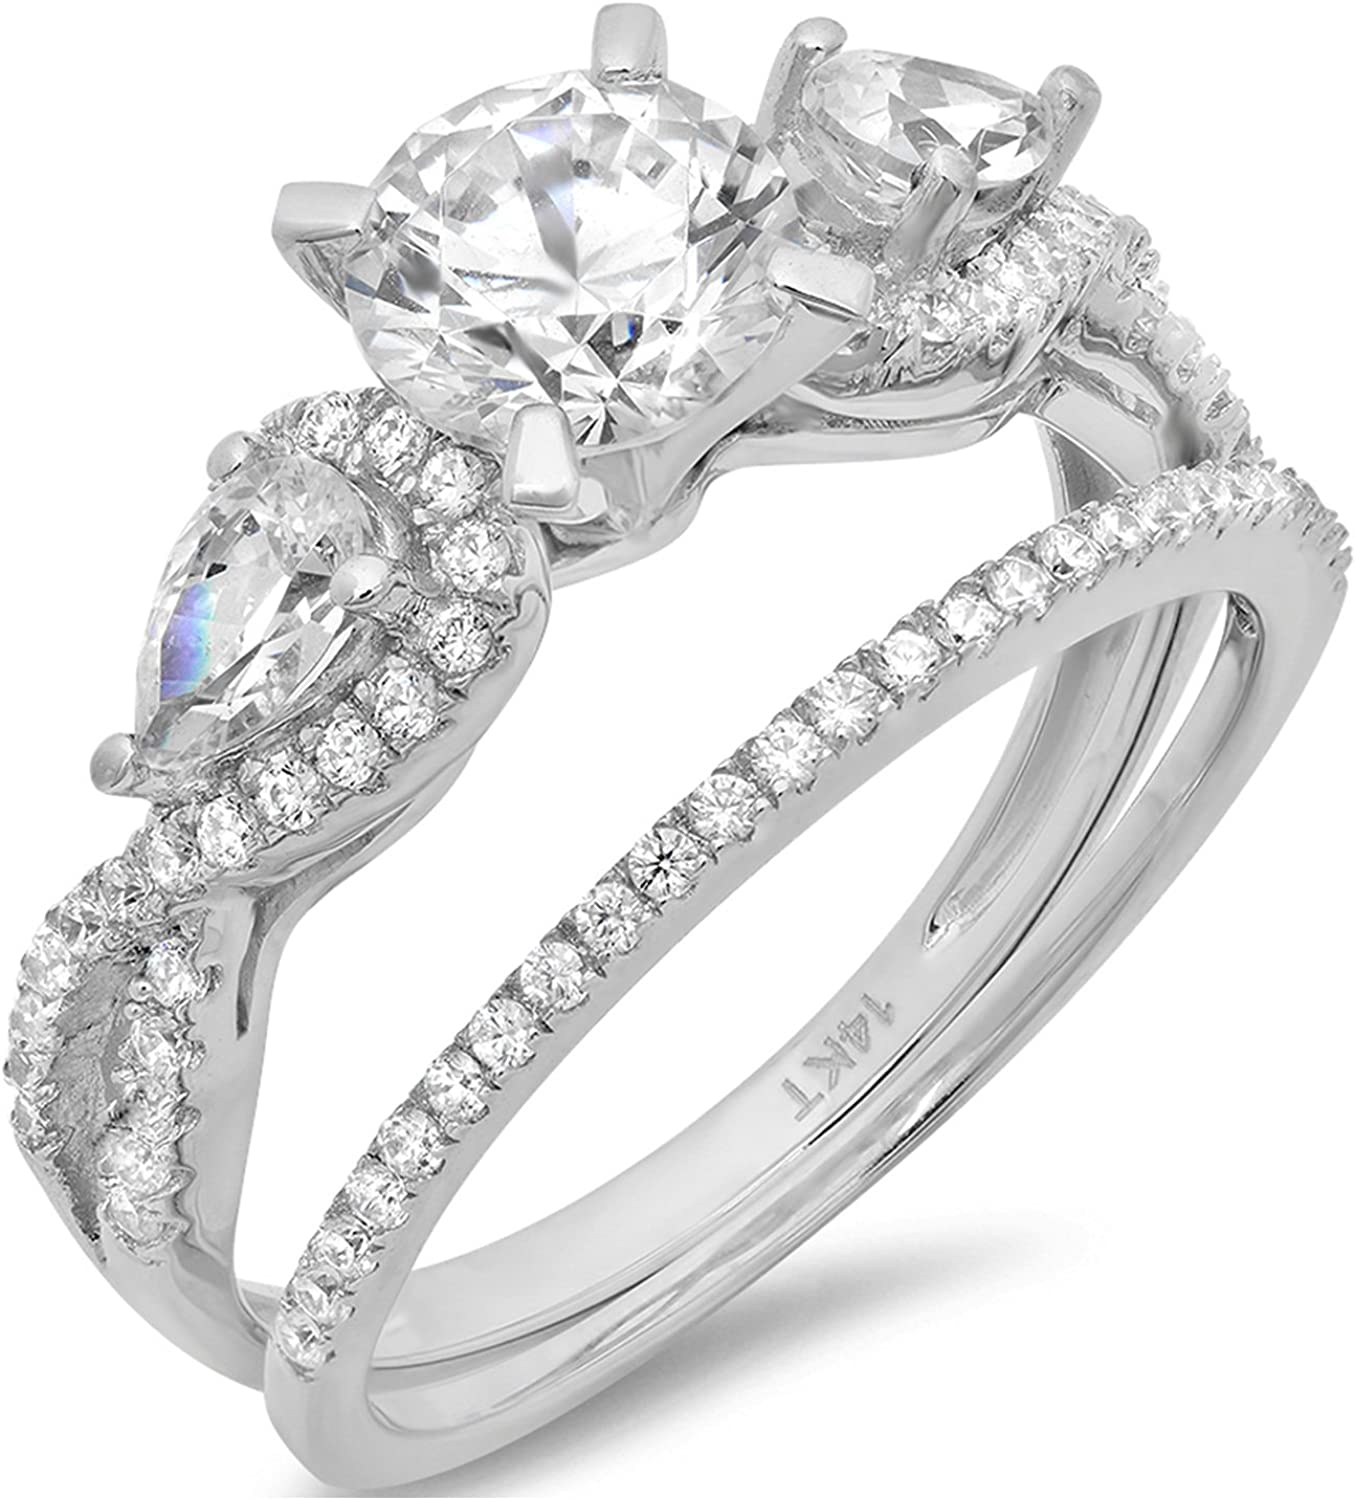 1.94ct Round Pear Cut Solitaire 3 stone With Accent VVS1 Ideal D Moissanite & Simulated Diamond Engagement Promise Designer Anniversary Wedding Bridal ring band set 14k White Gold